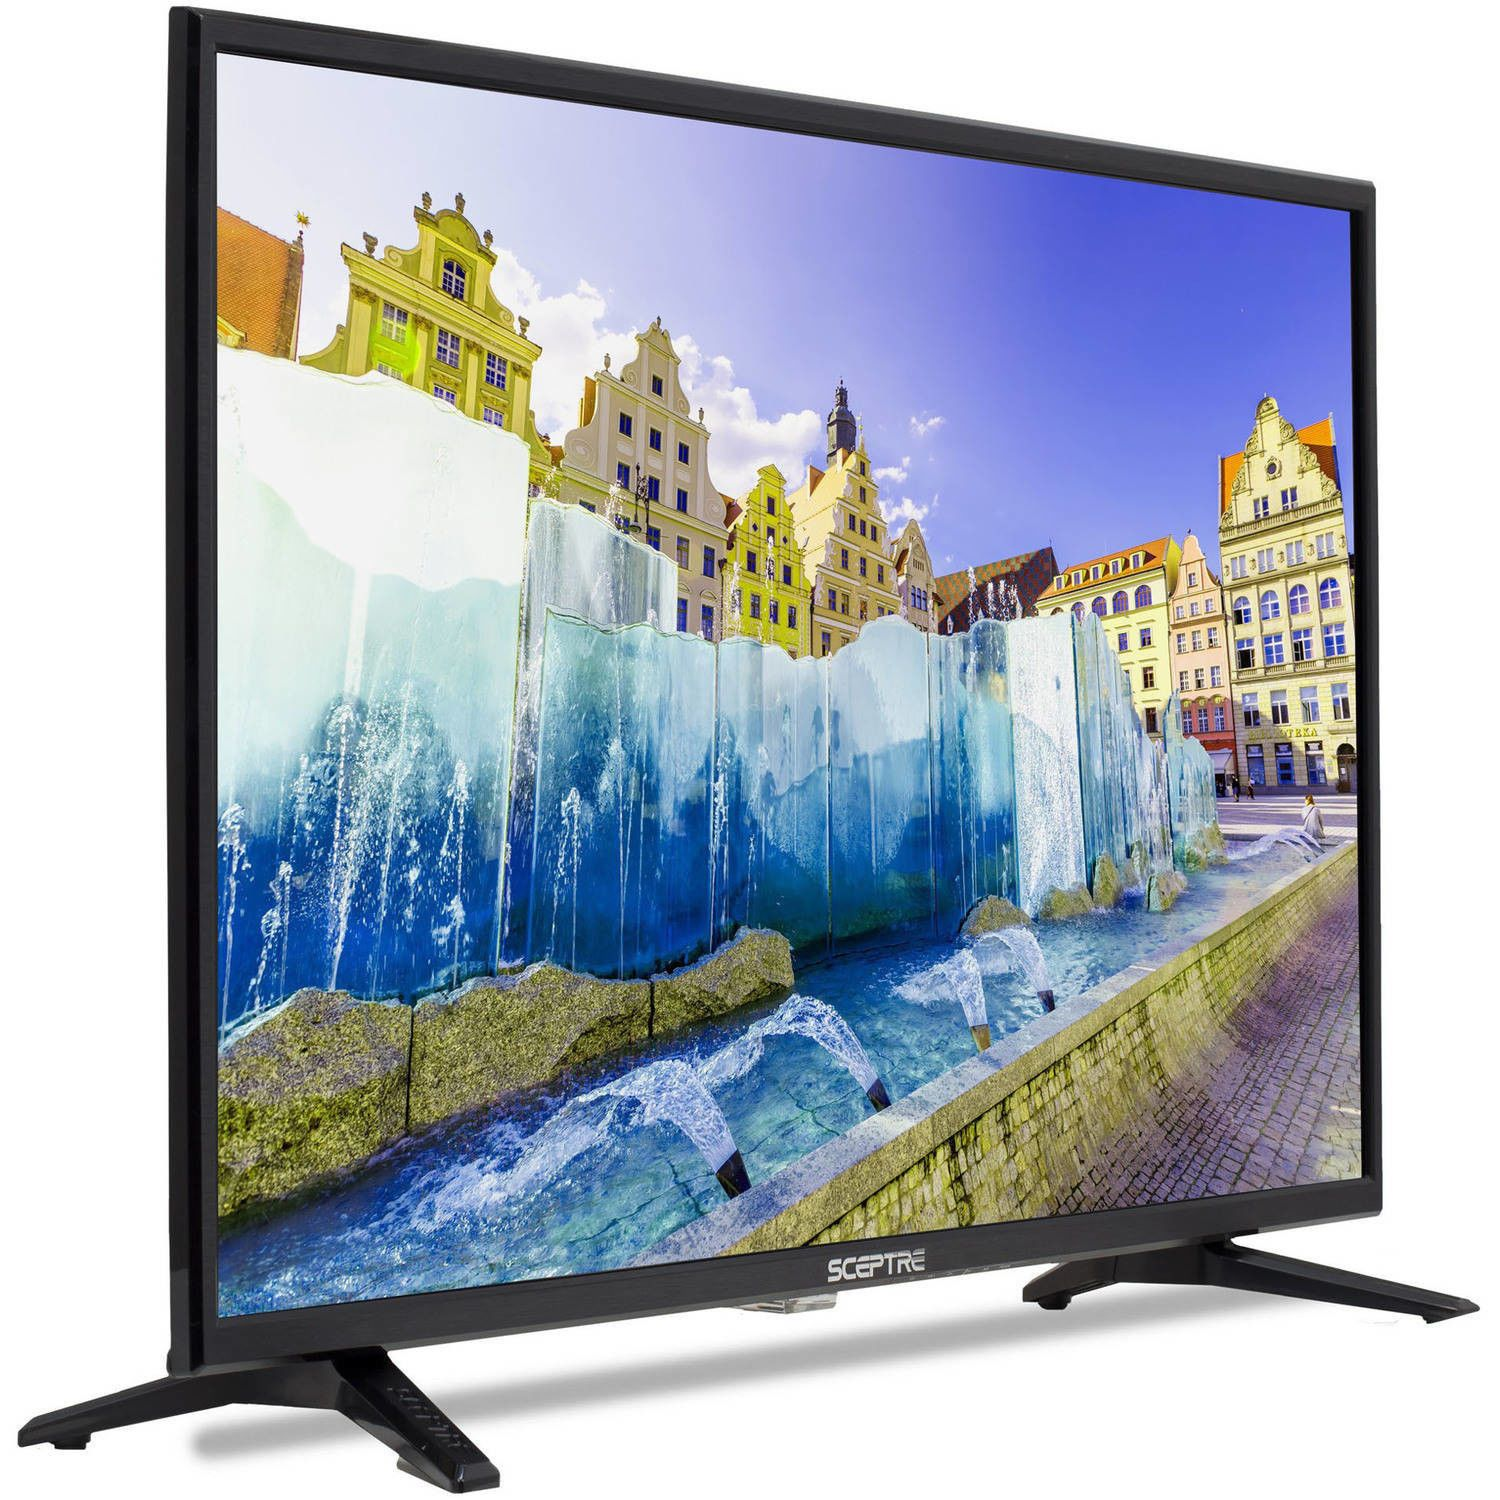 Picture 1 Of 12 Lcd Television Led Tv Scepter